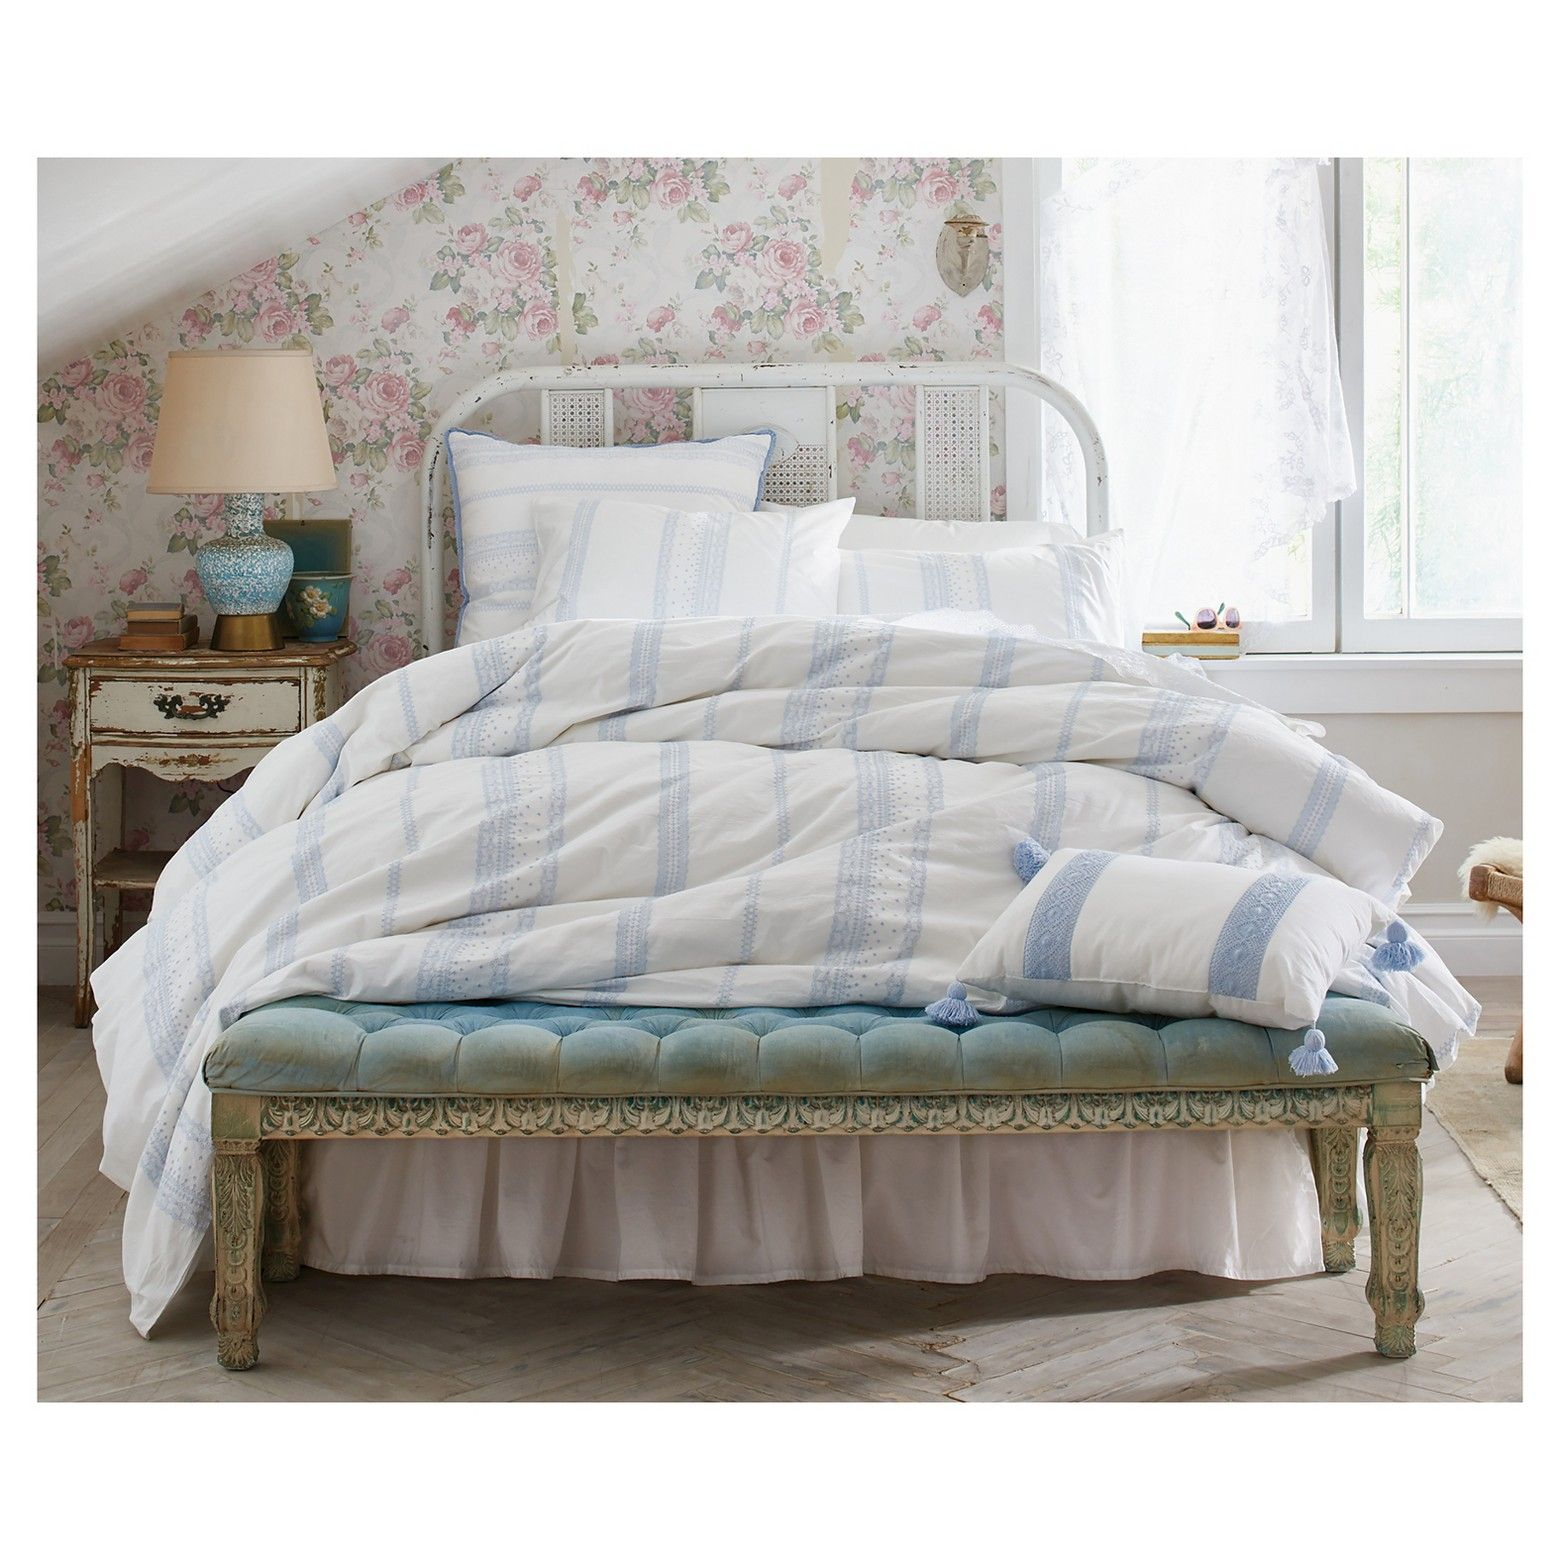 Simply Shabby Chic Bohemian Embroidered Duvet Cover Set Simply